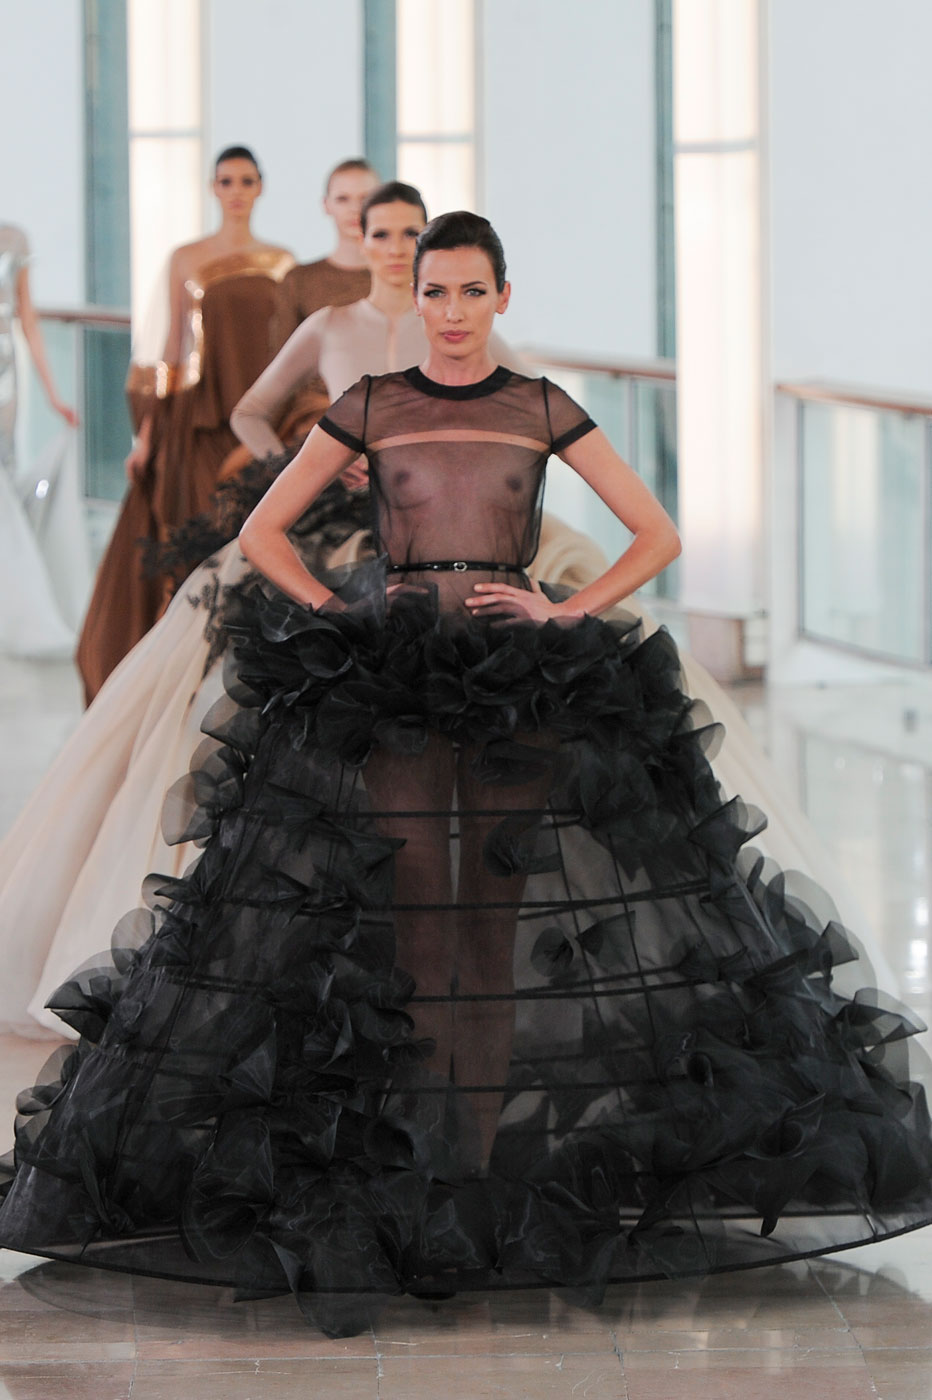 stephane-rolland-fashion-runway-show-haute-couture-paris-spring-2015-the-impression-71